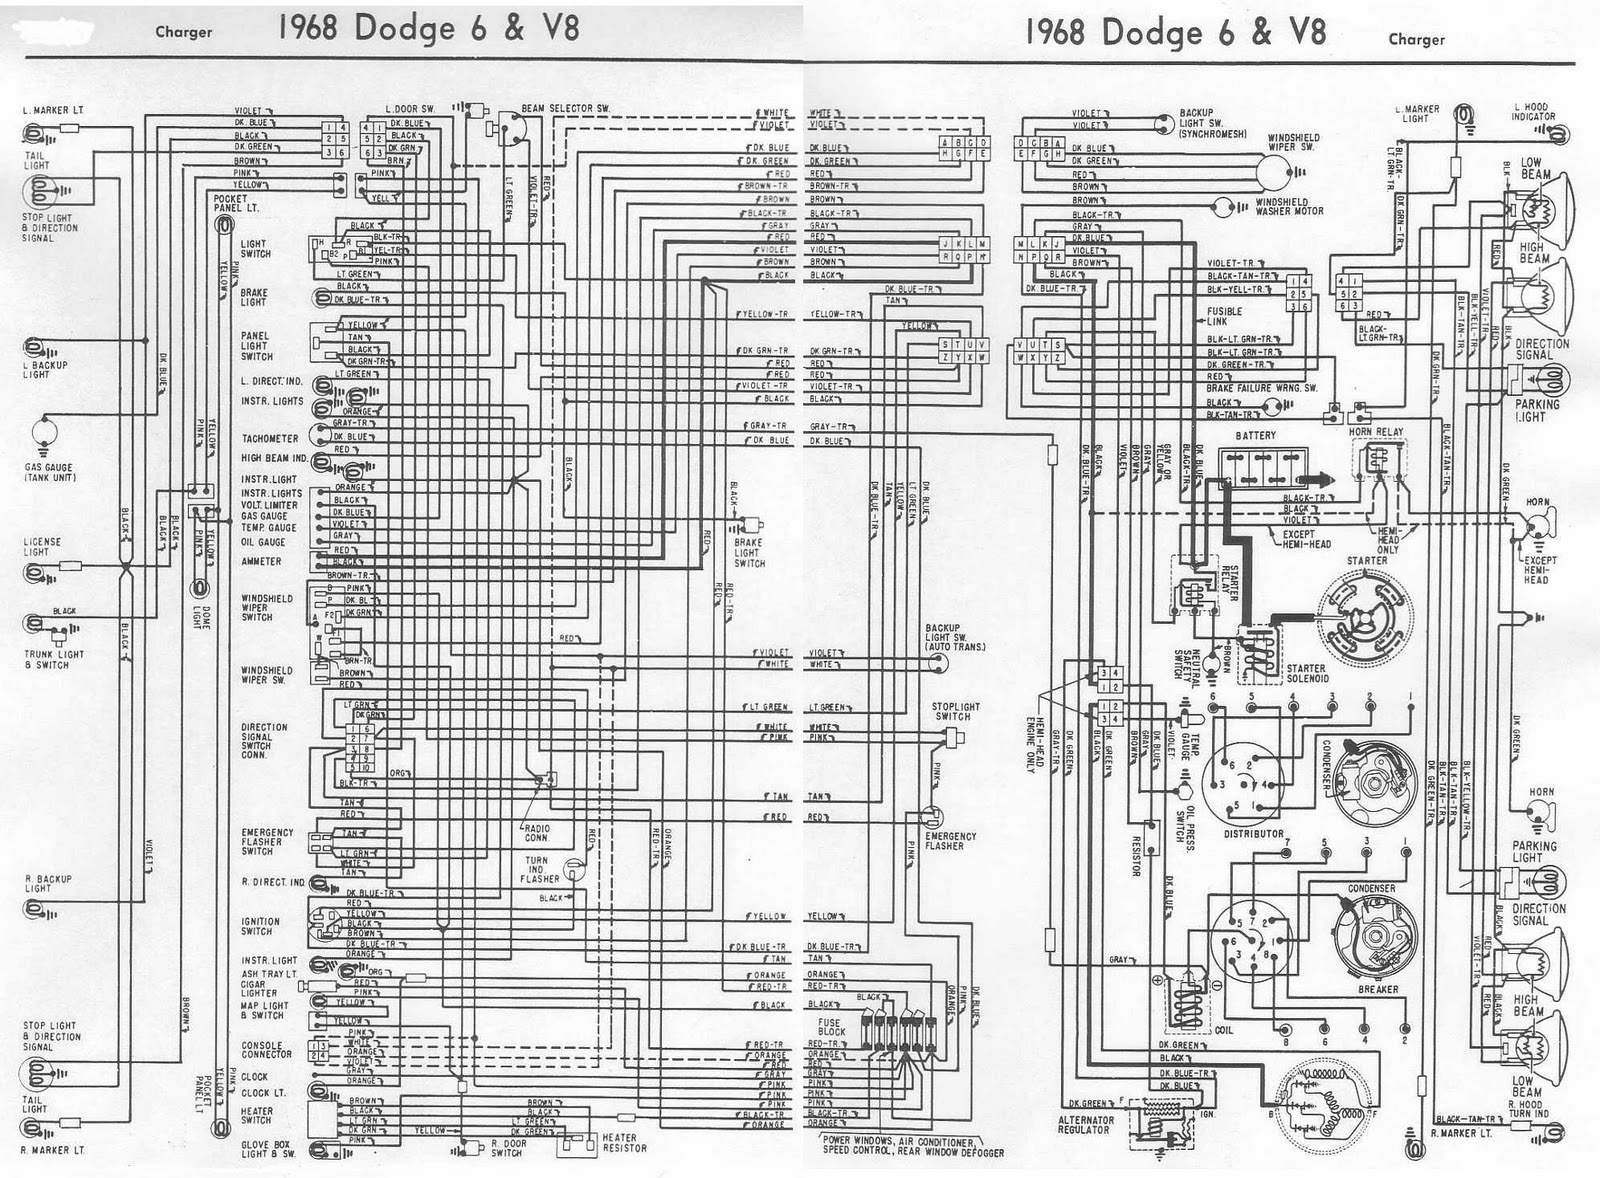 Dodge+Charger+1968+6+and+V8+Complete+Electrical+Wiring+Diagram dodge charger wiring diagram dodge wiring diagrams instruction 1970 dodge coronet wiring diagram at fashall.co